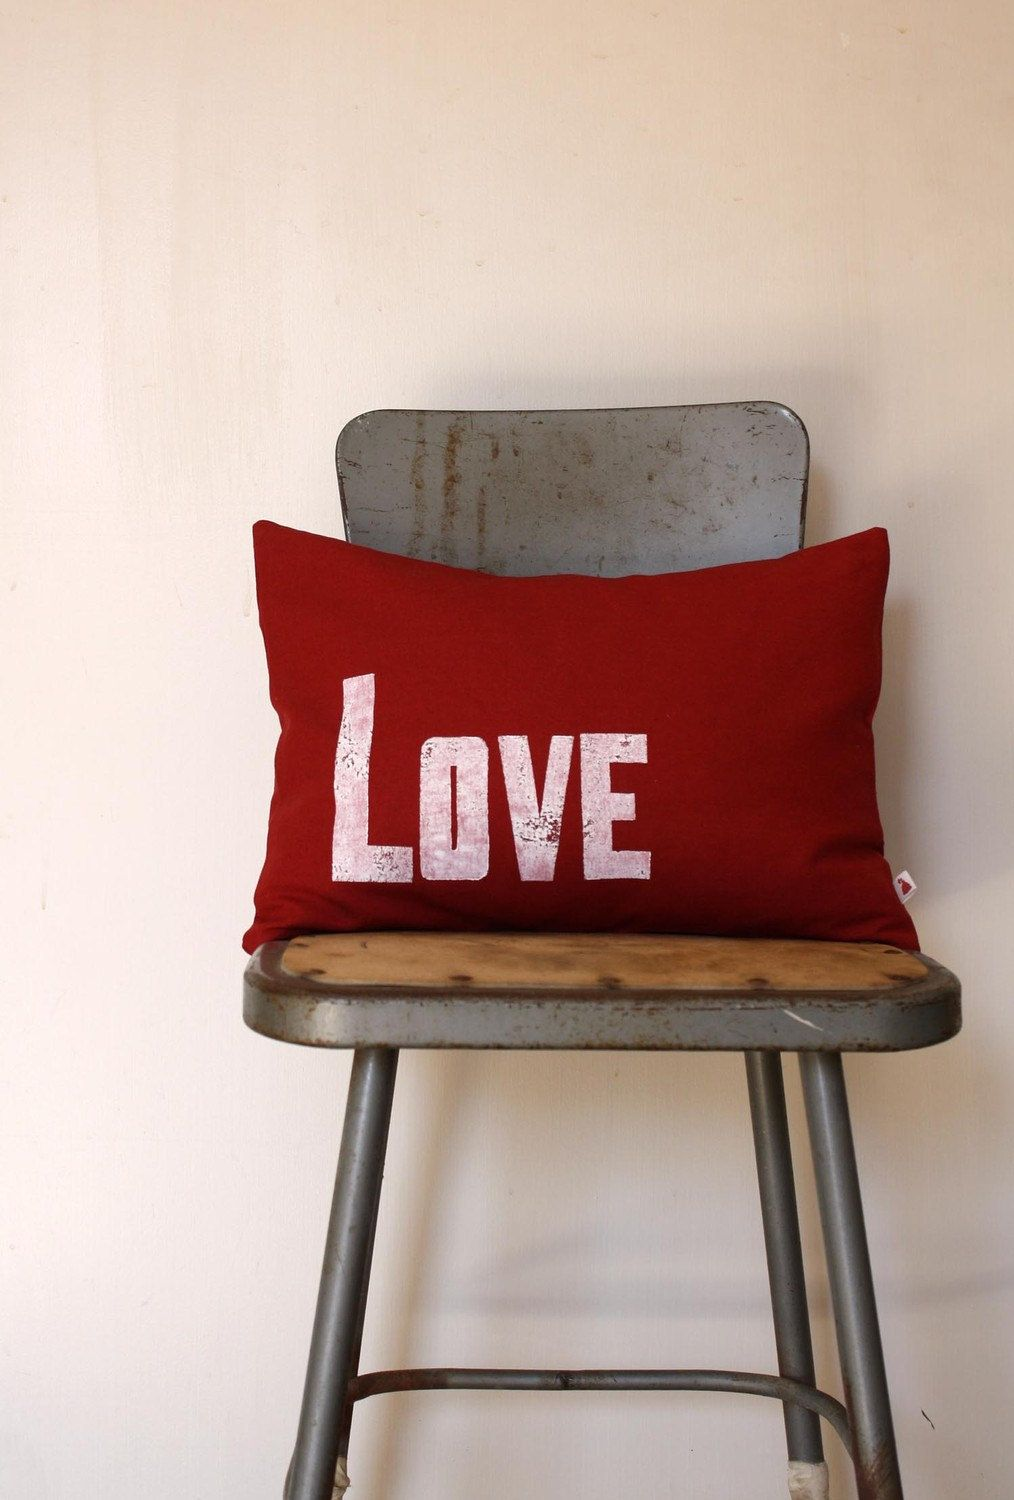 LOVE this pillow ;)